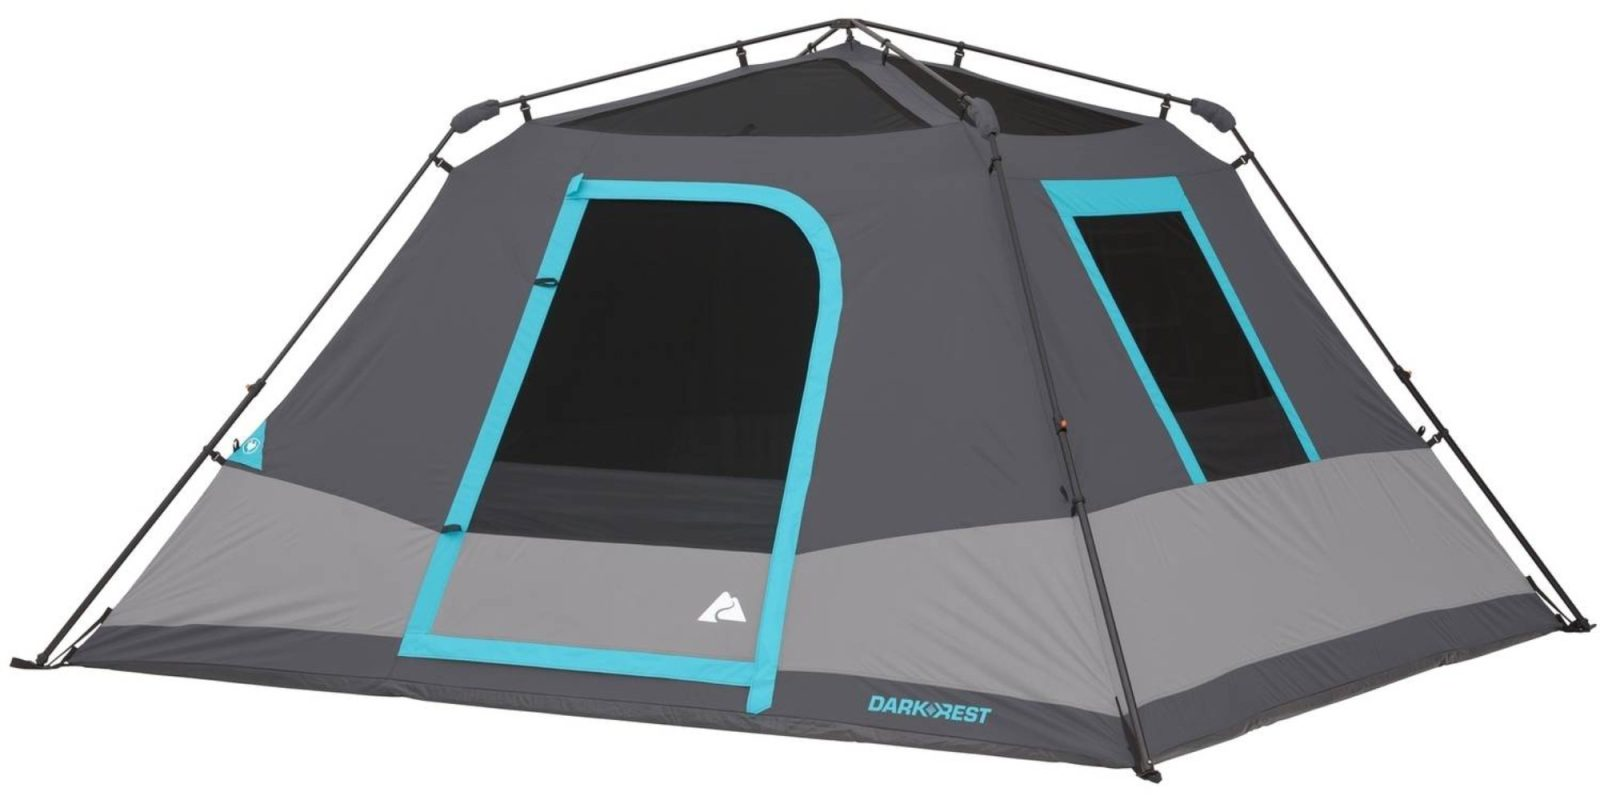 This 6-Person Ozark Trail Tent fits 2 queen size airbeds and sets up